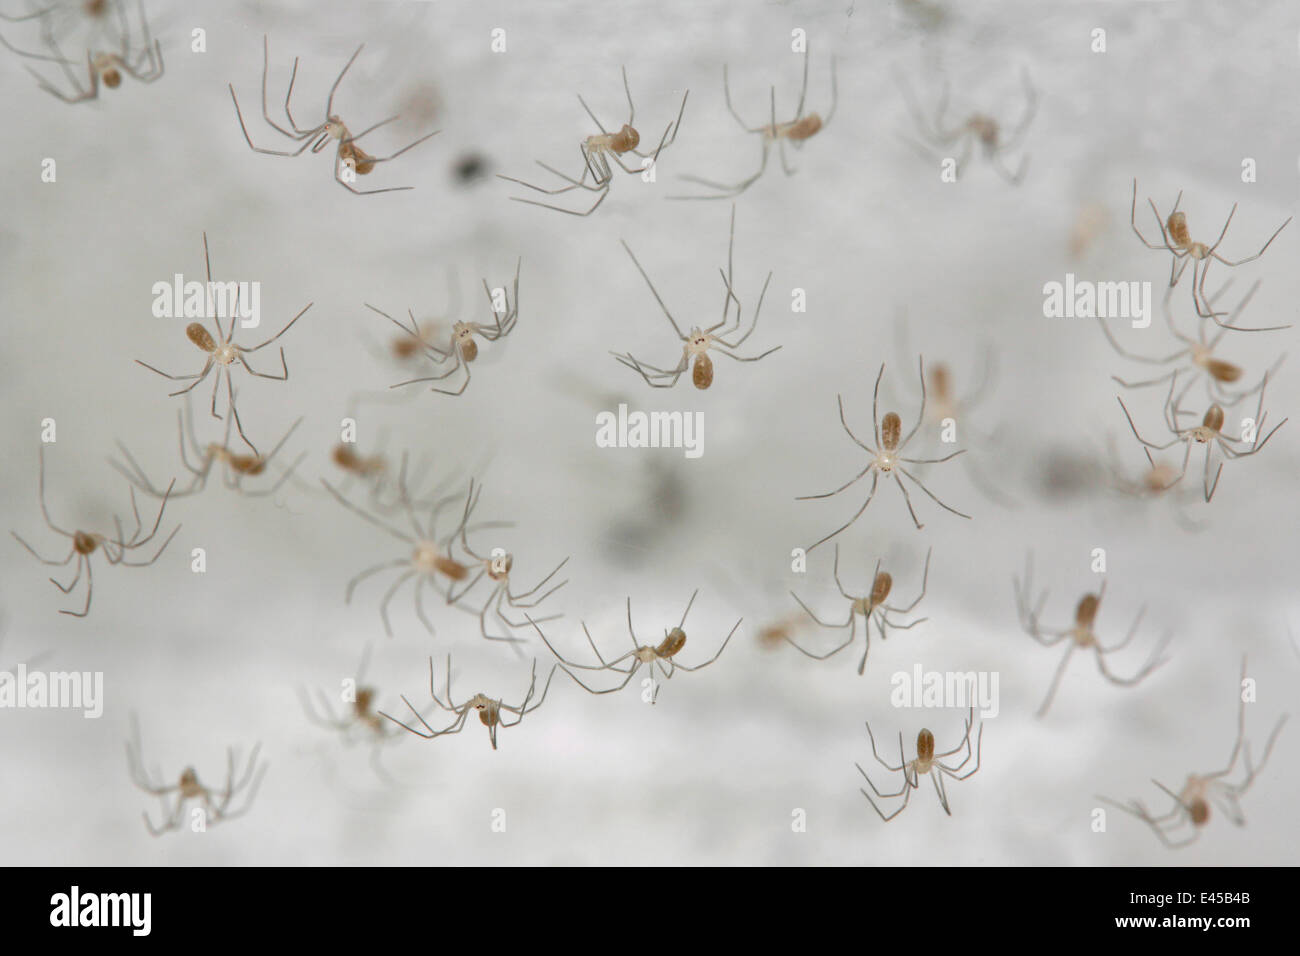 Juvenile Dadddy longleg spiderlings {Pholcus phalangioides} in web, Germany - Stock Image